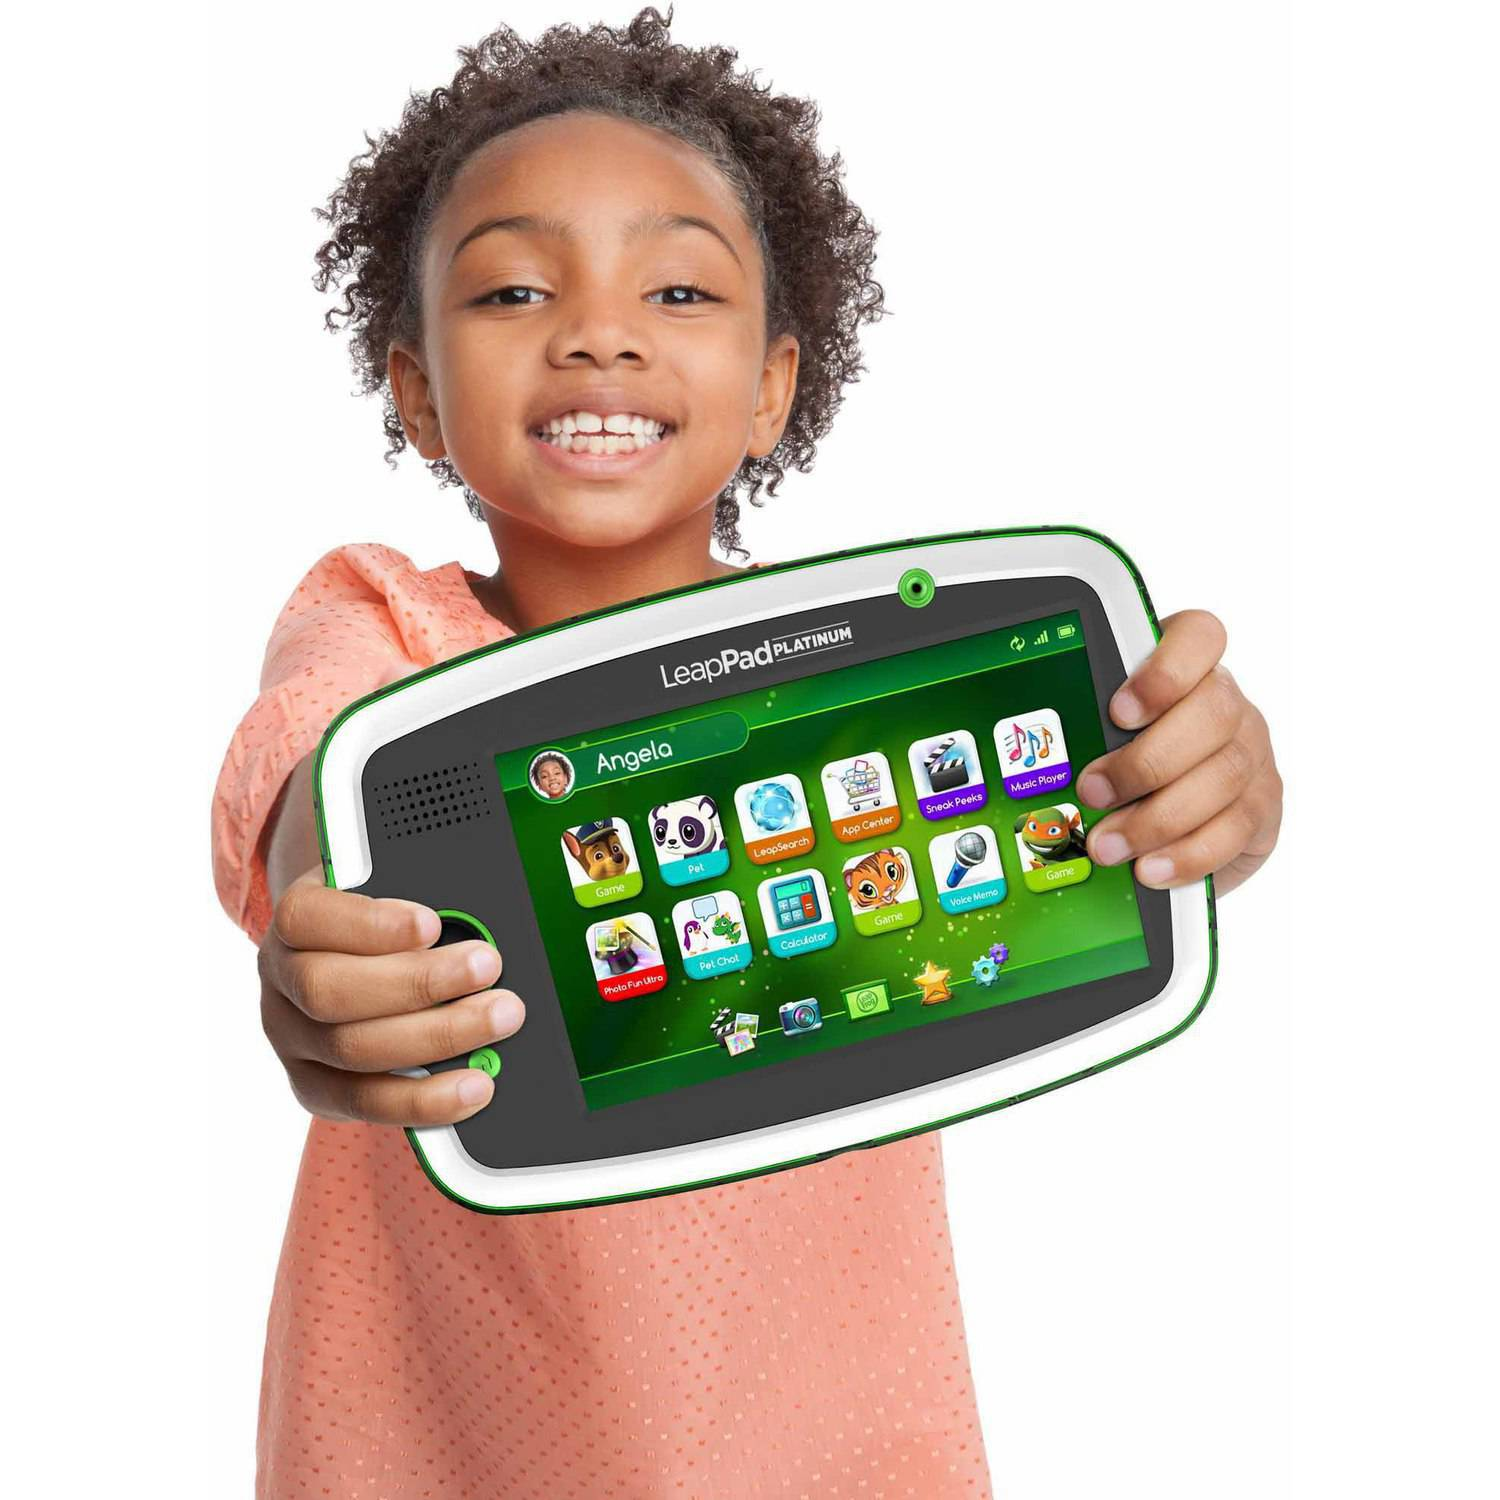 LeapFrog LeapPad Platinum Kids Learning Tablet Green Walmart